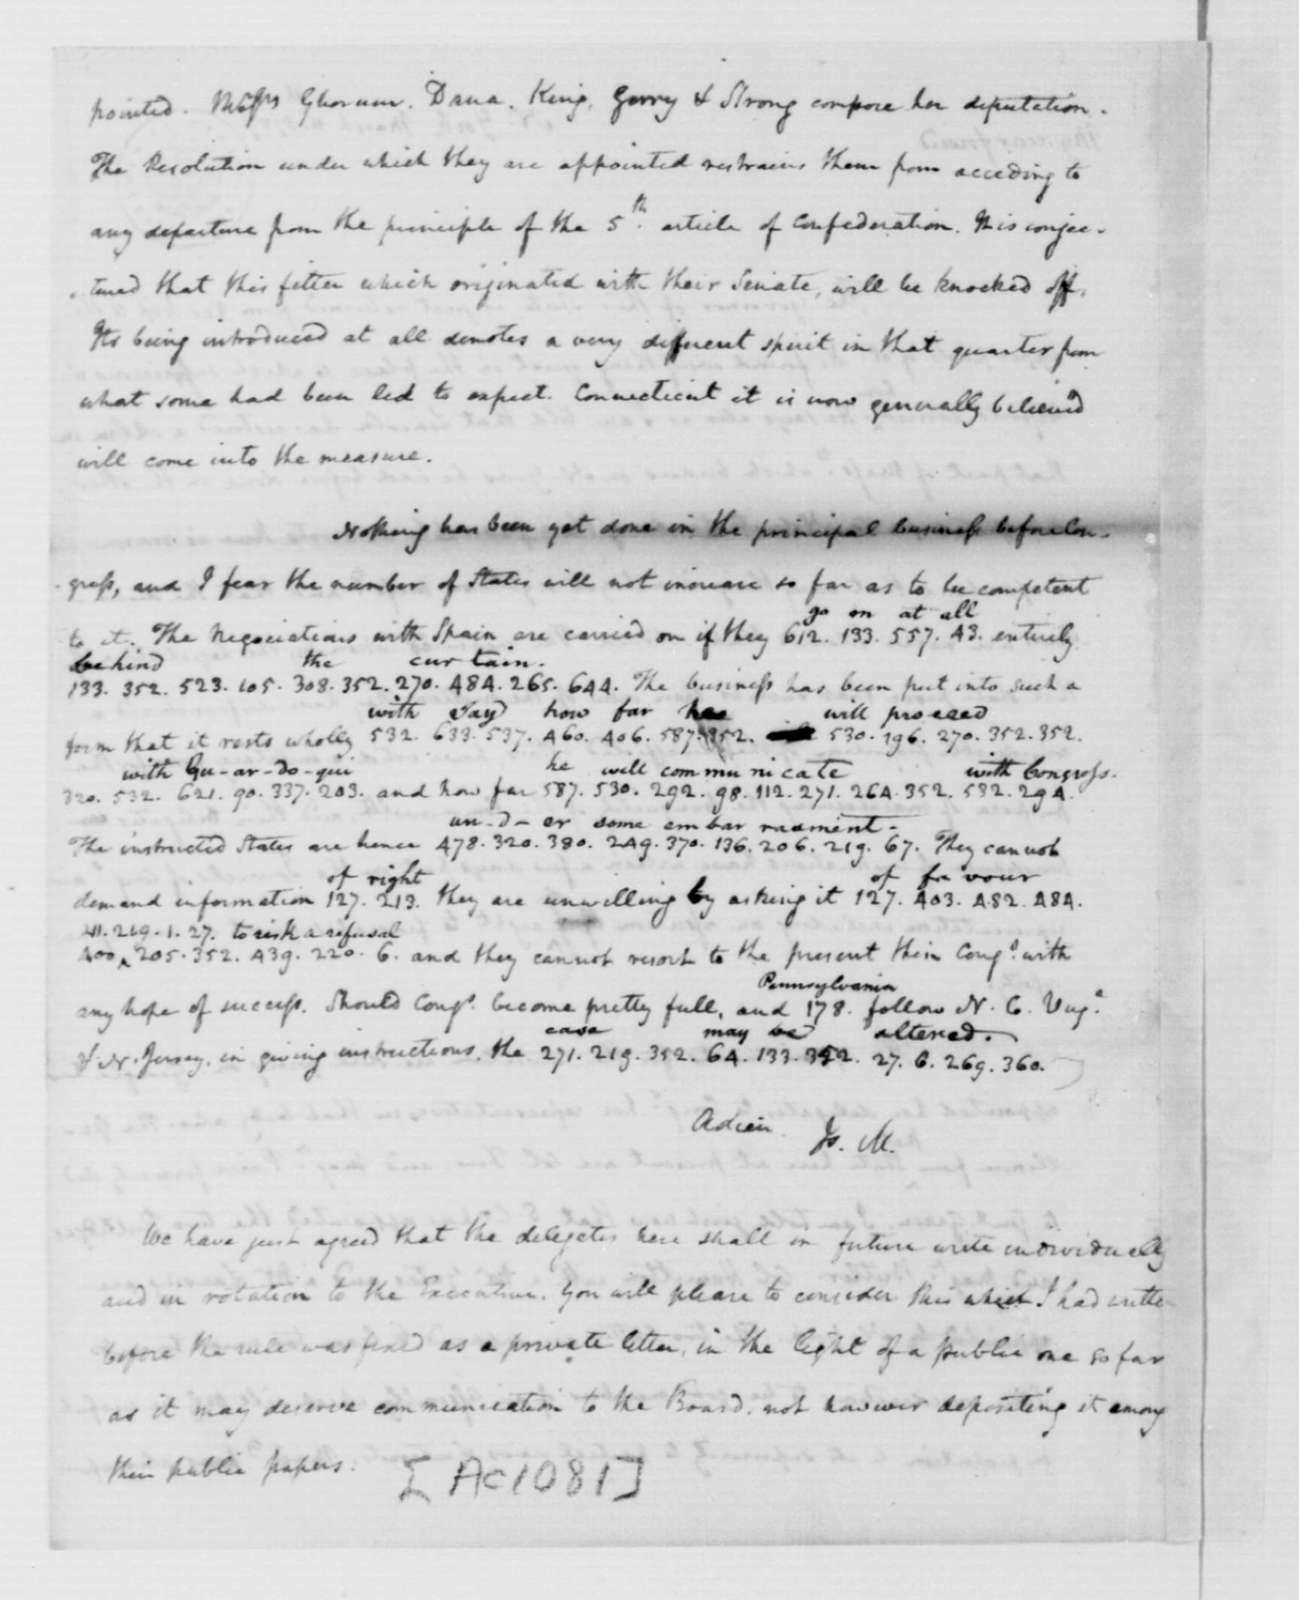 James Madison to Edmund Randolph, March 11, 1787. Partly in Cipher.